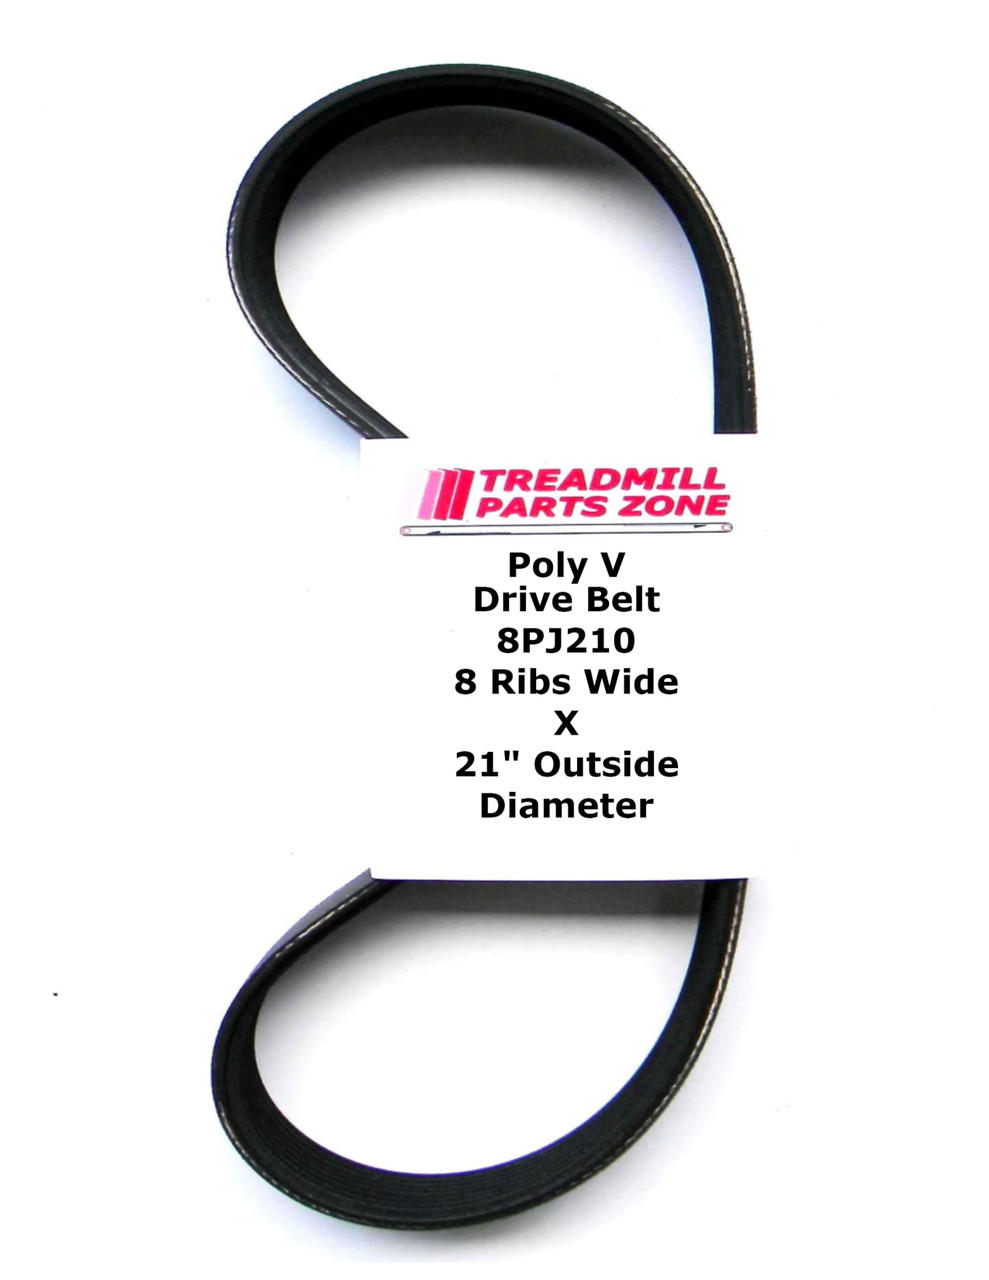 "Poly V Drive Belt 8PJ210 8 Ribs Wide X 21"" Outside Diameter"